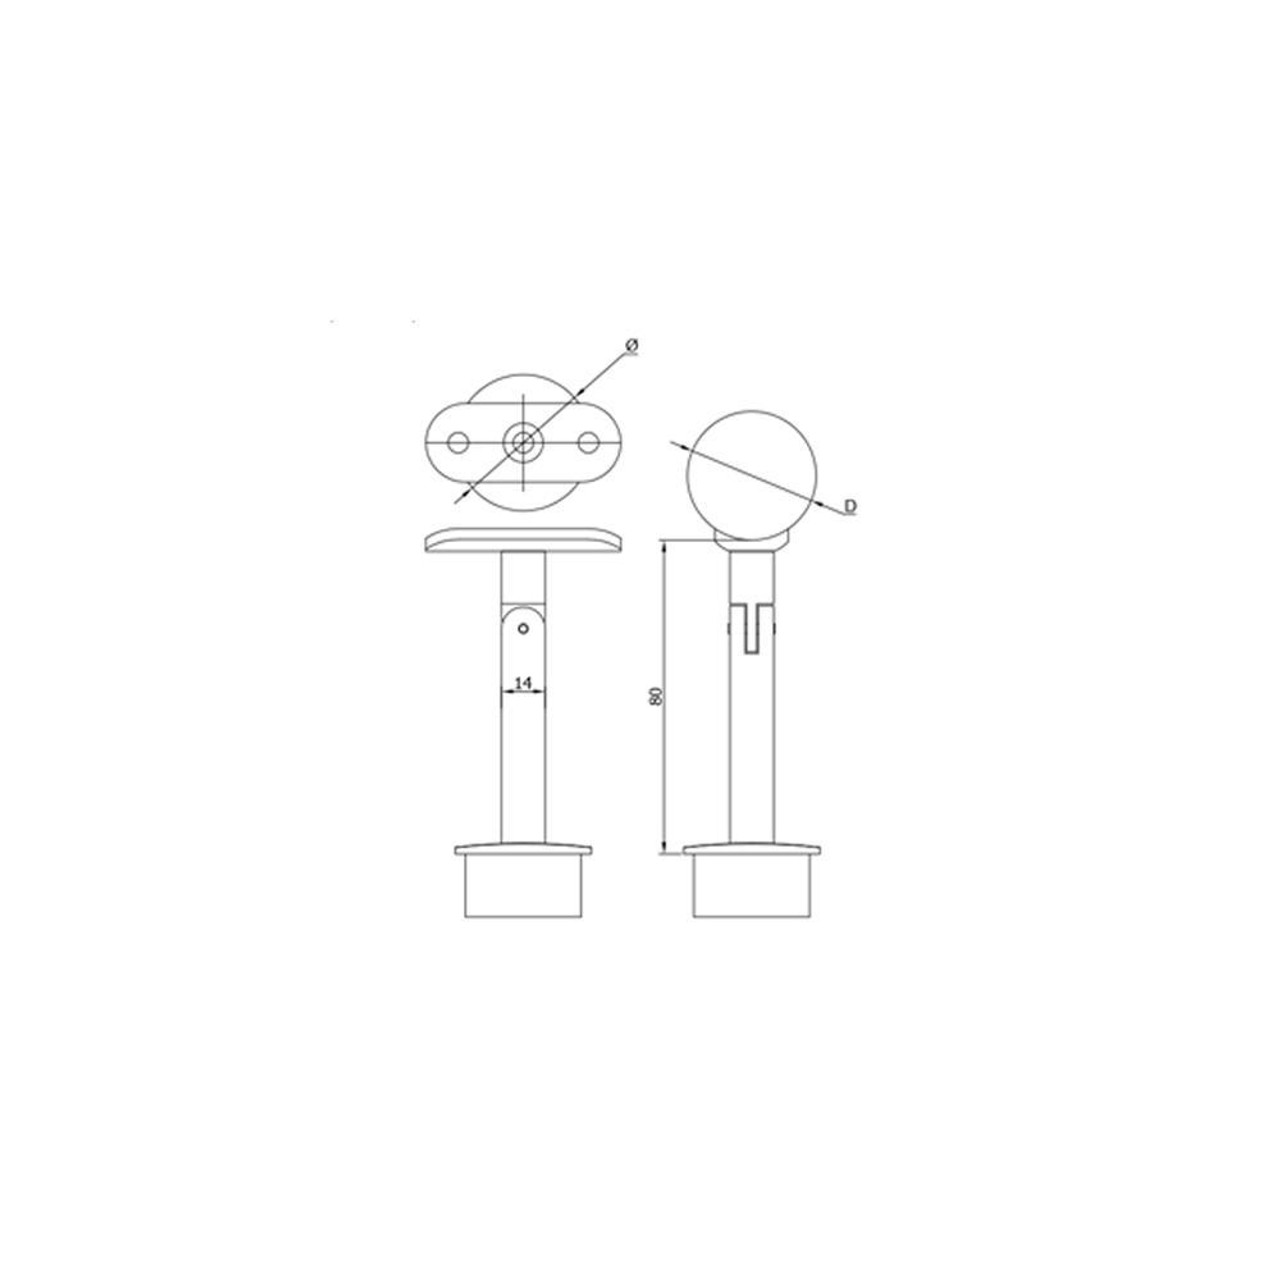 42.4 mm Post Handrail Support – Angle Adjustable CADD